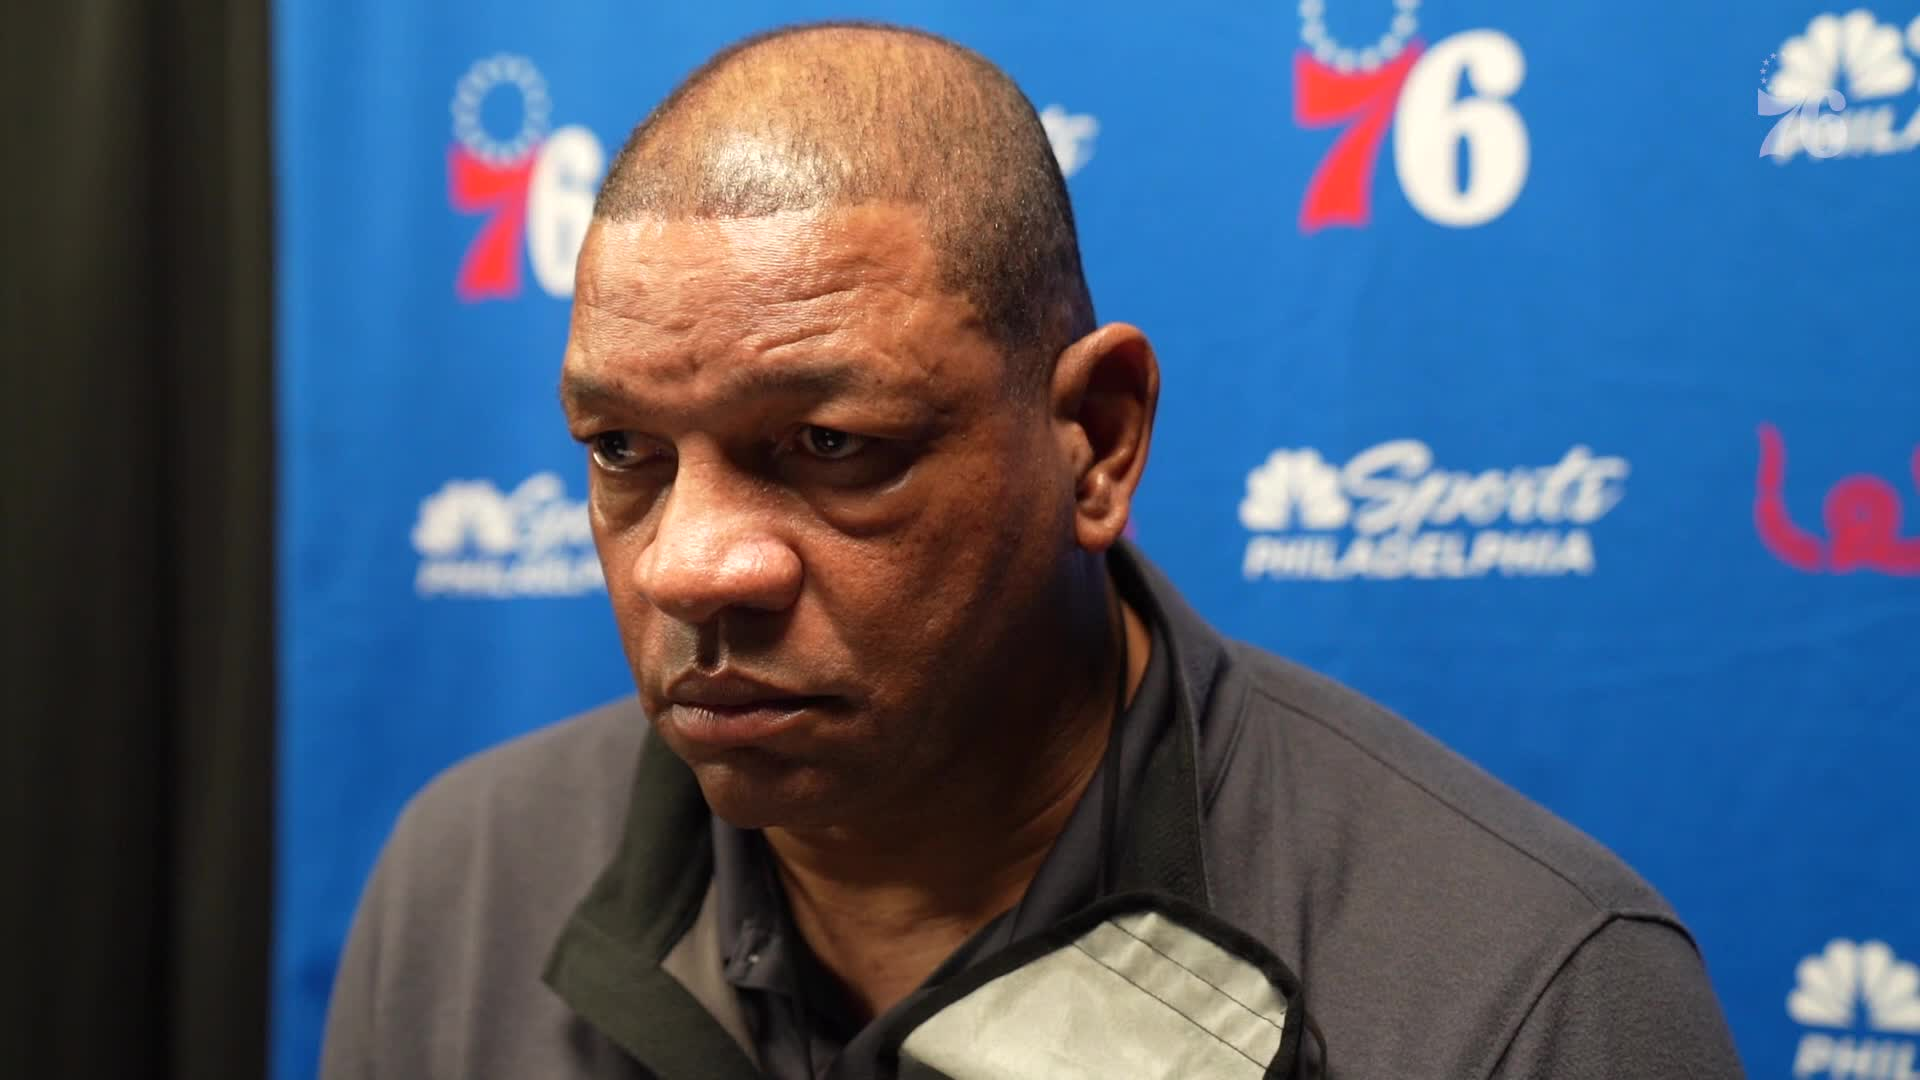 Doc Rivers | Postgame Media @ Chicago Bulls (05.03.21)